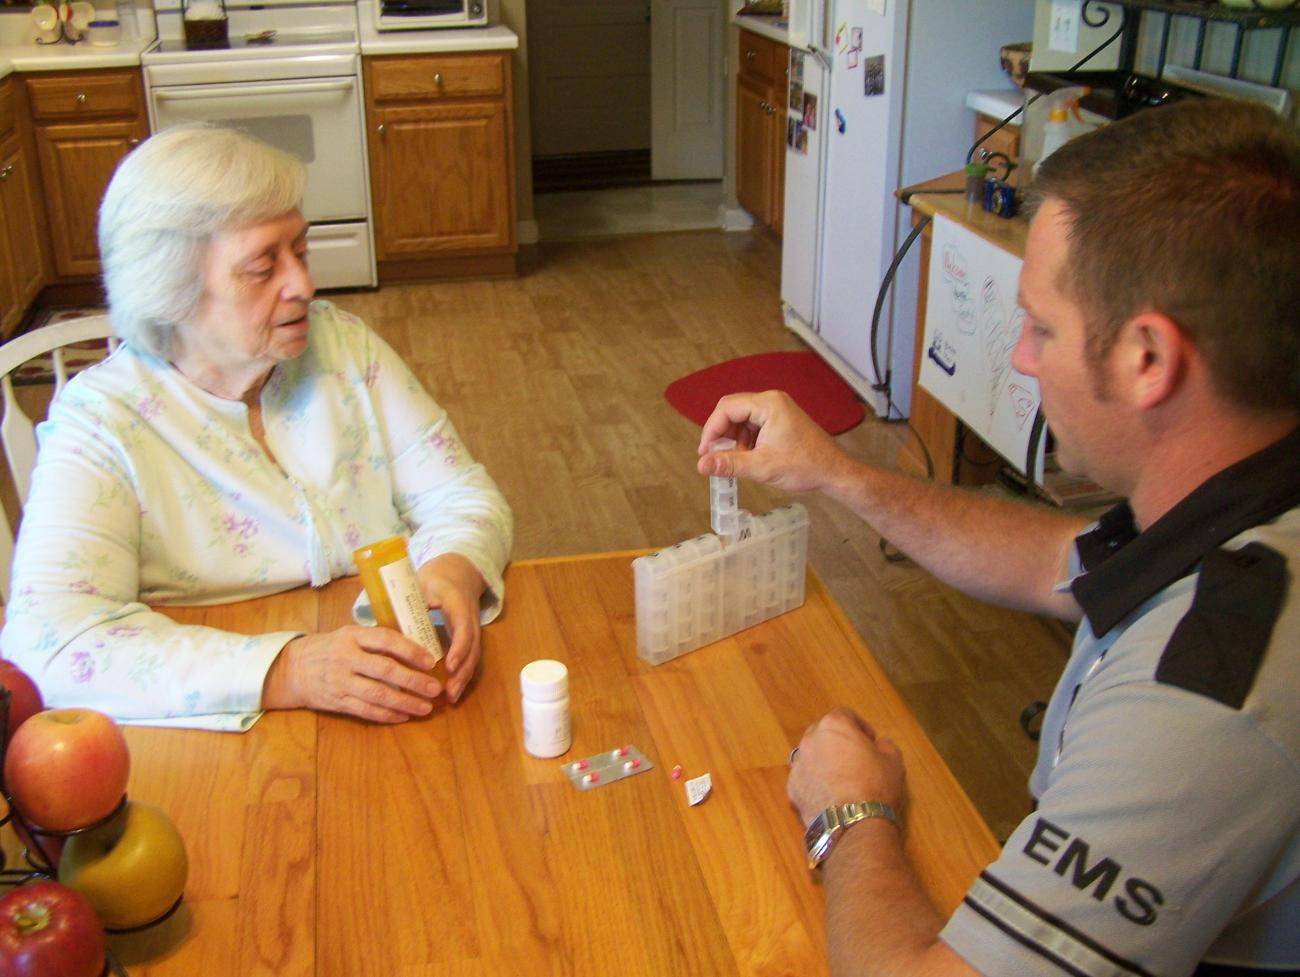 Community member receiving information from a paramedic